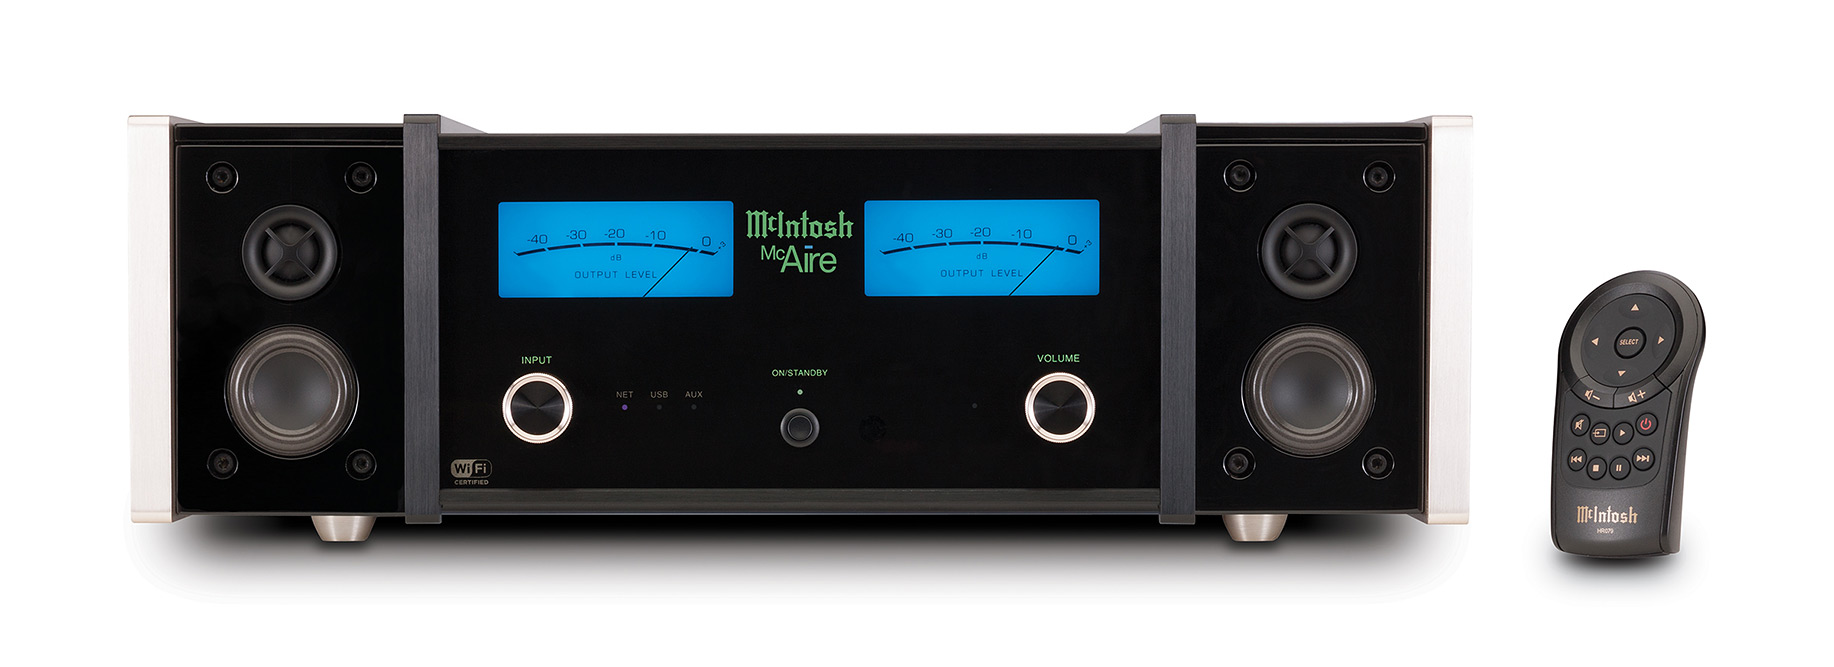 mcintosh-mcaire-stereo-system-07